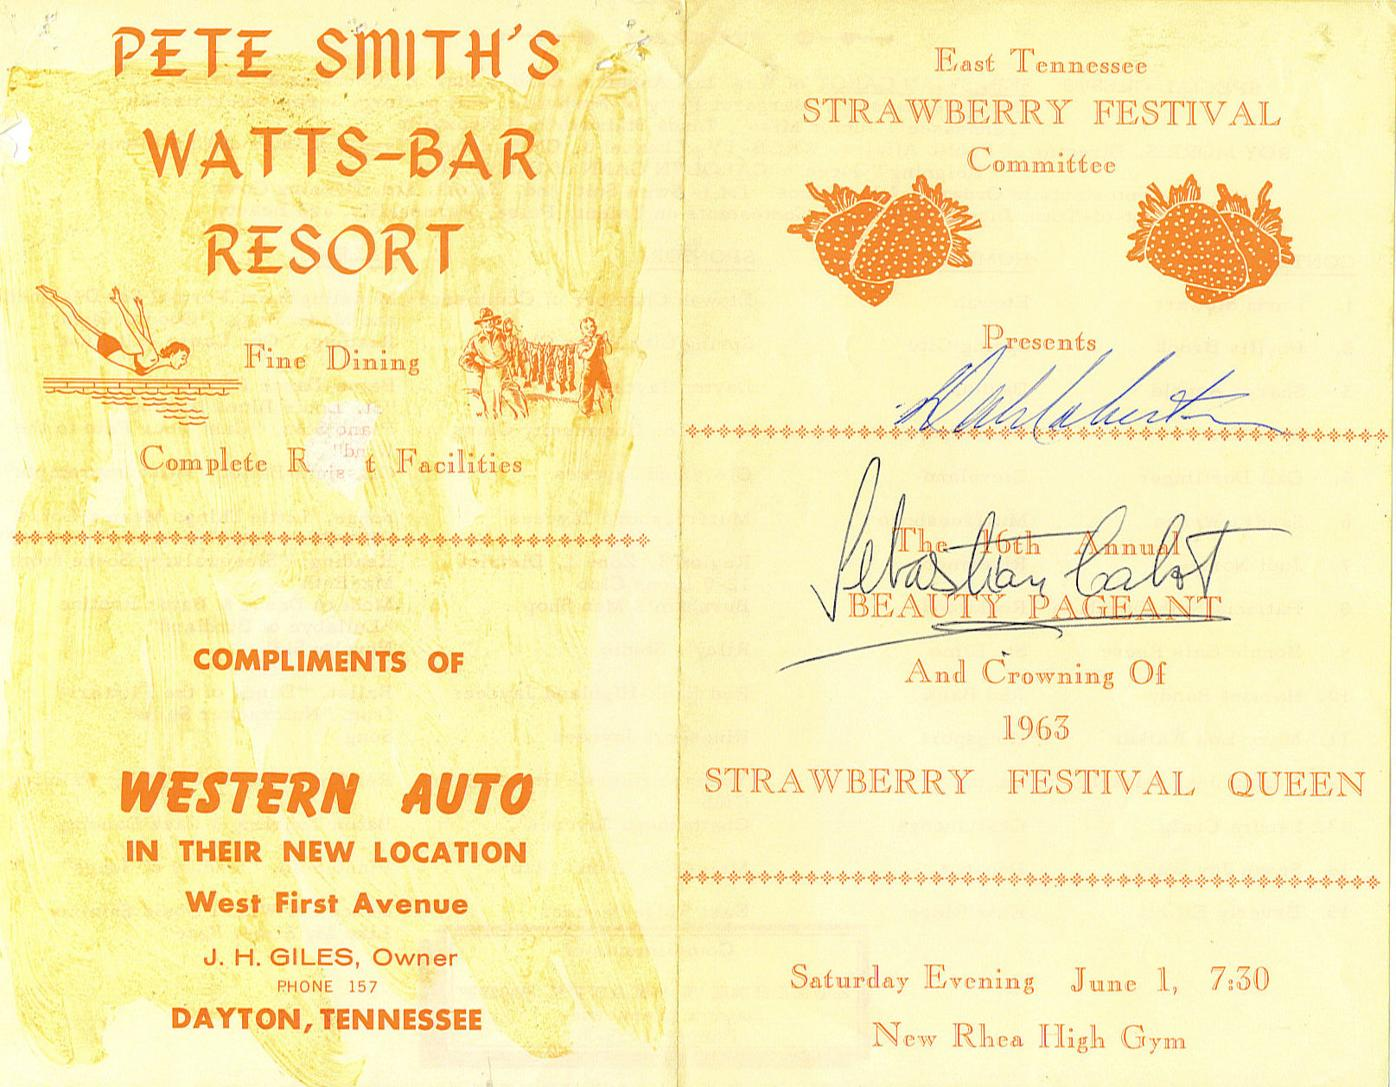 1963 Strawberry Festival Program